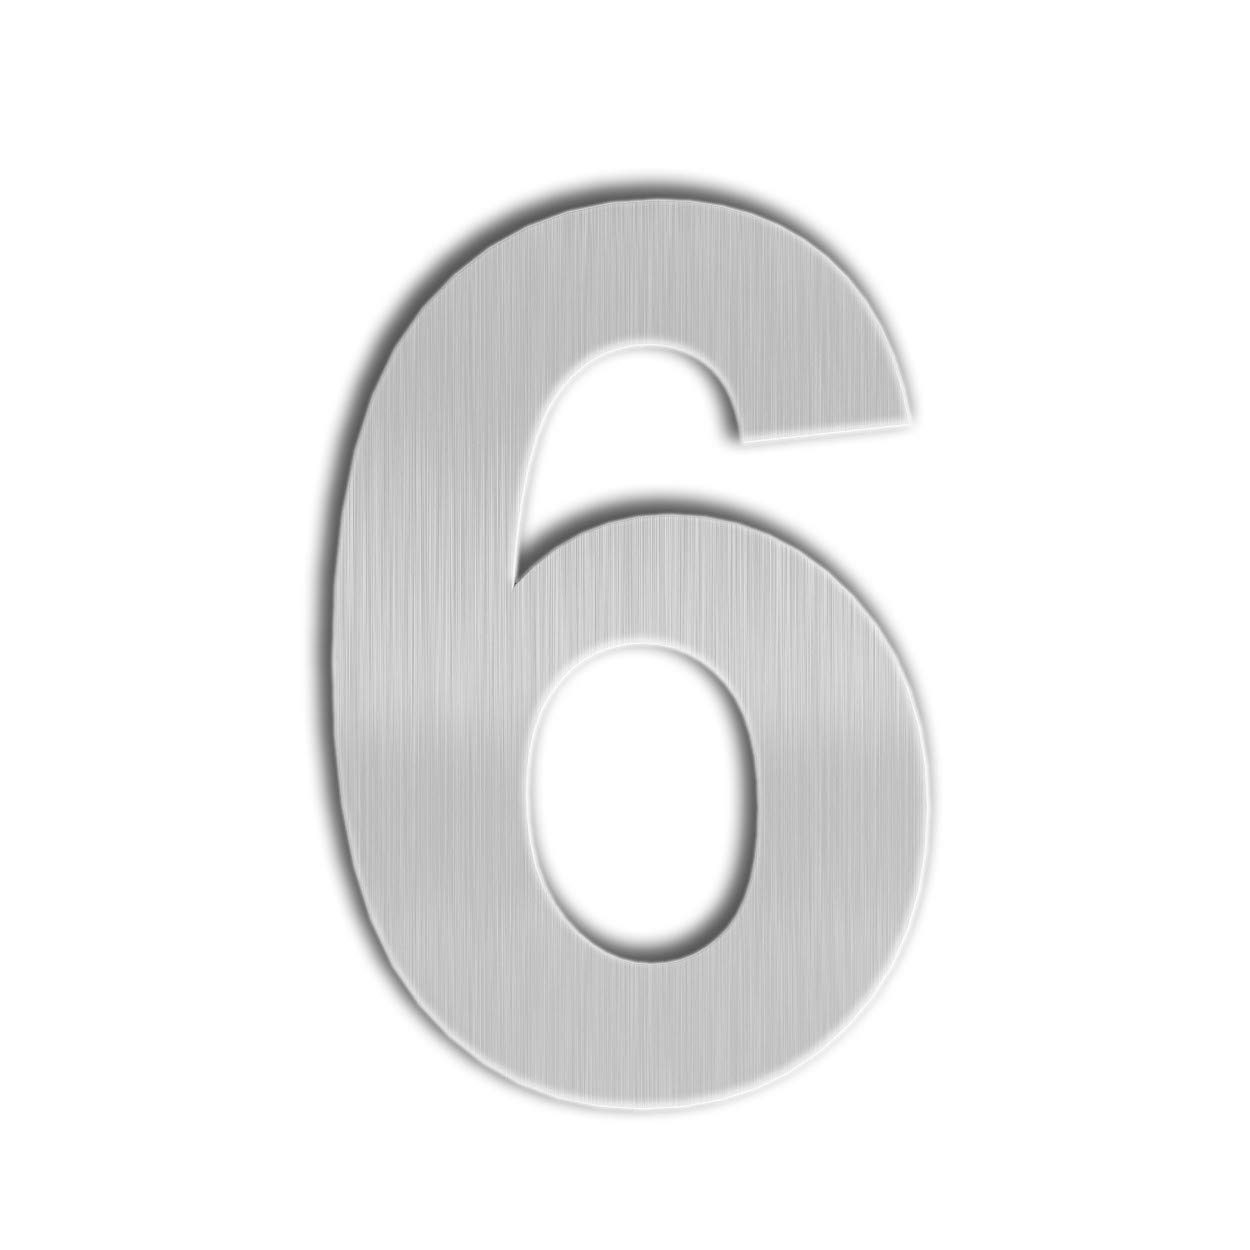 QT Modern House Number - EXTRA LARGE 10 Inch - Brushed Stainless Steel (Number 6 Six / 9 Nine), Floating Appearance, Easy to install and made of solid 304